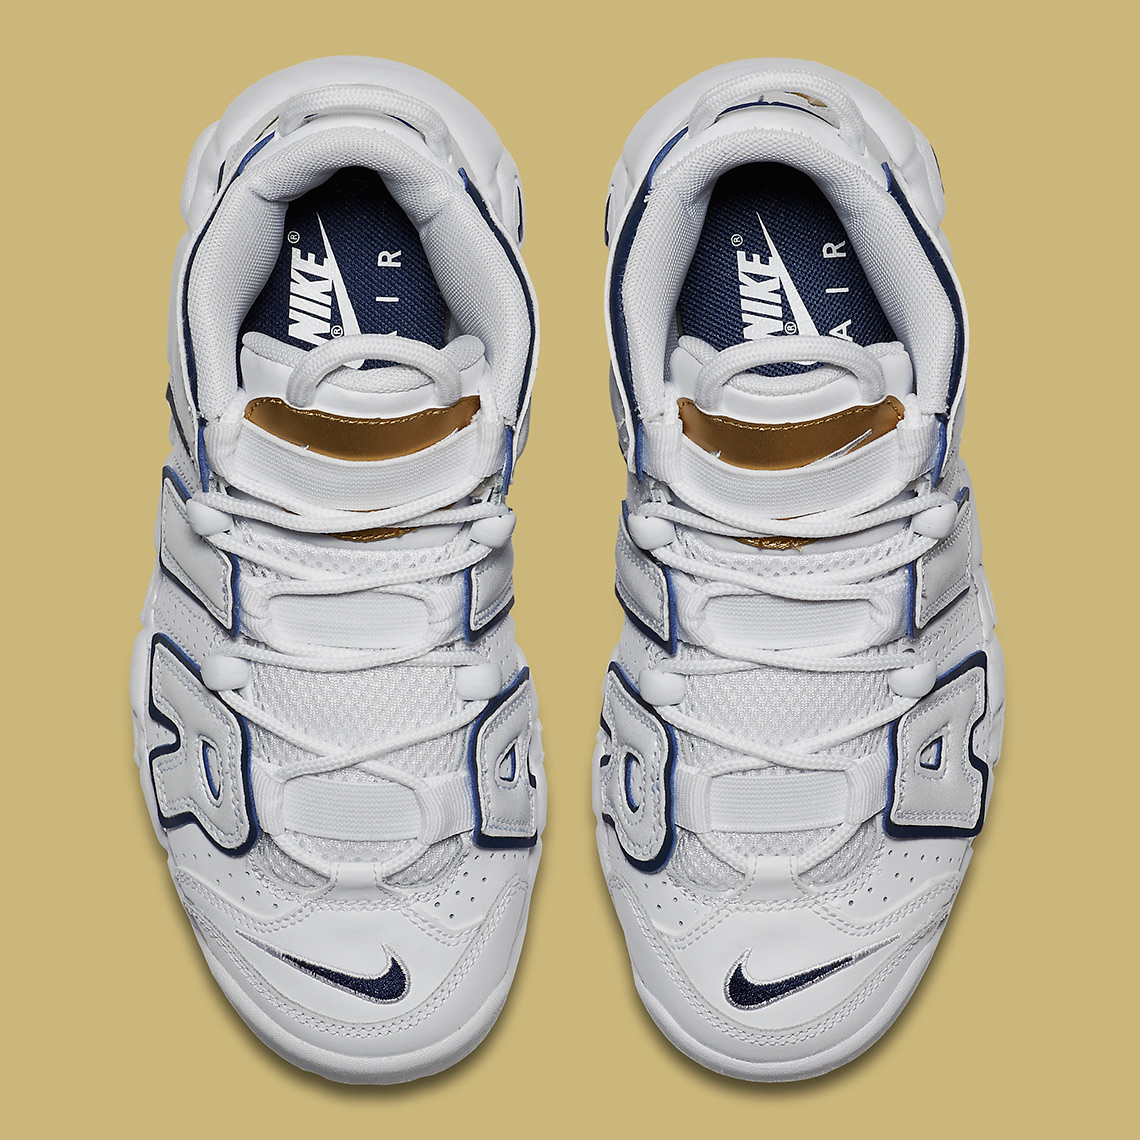 112fef280dc Nike Air More Uptempo GS Color  White Midnight Navy-Metallic Gold Style  Code  415082-109. Advertisement. Advertisement